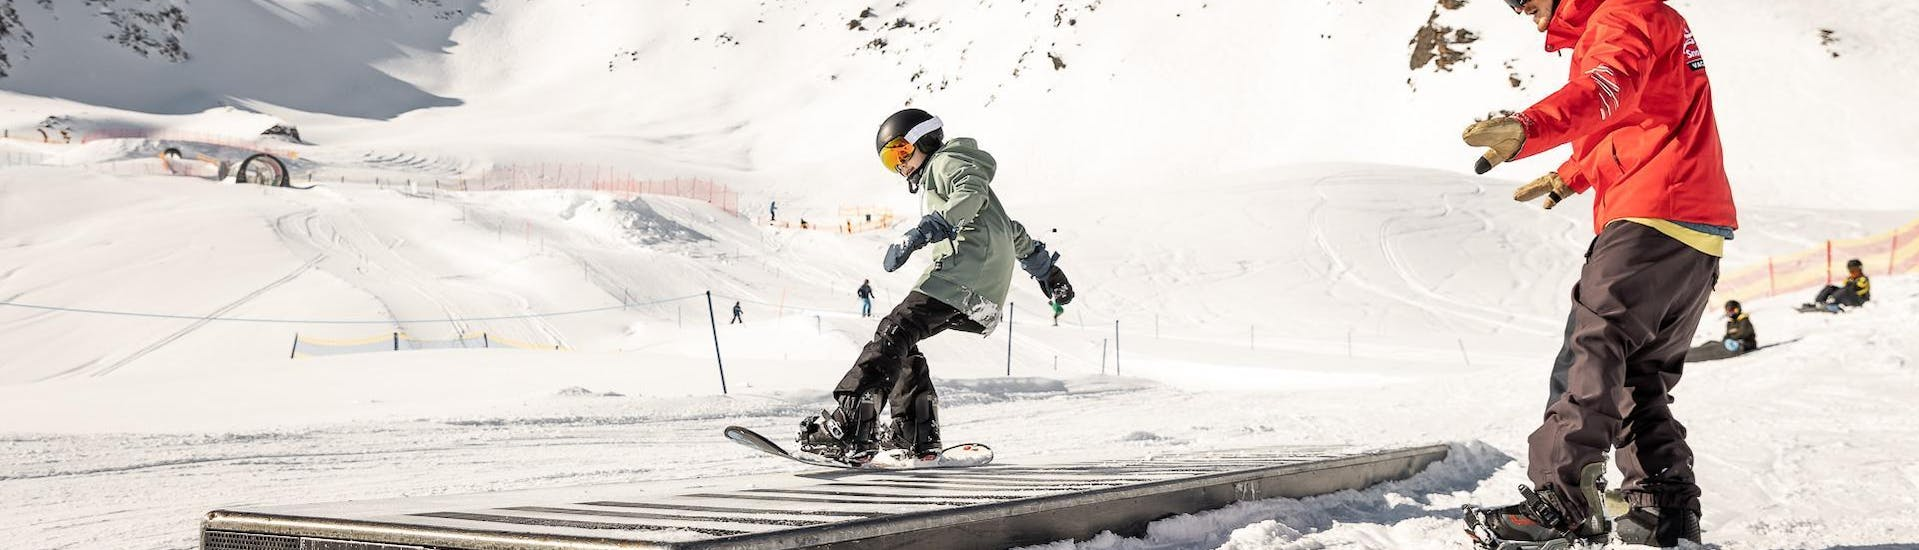 A young snowboarder is practicing new tricks during his Private Snowboarding Lessons for Kids - All Levels with the ski school Ski- und Snowboardschule Vacancia.